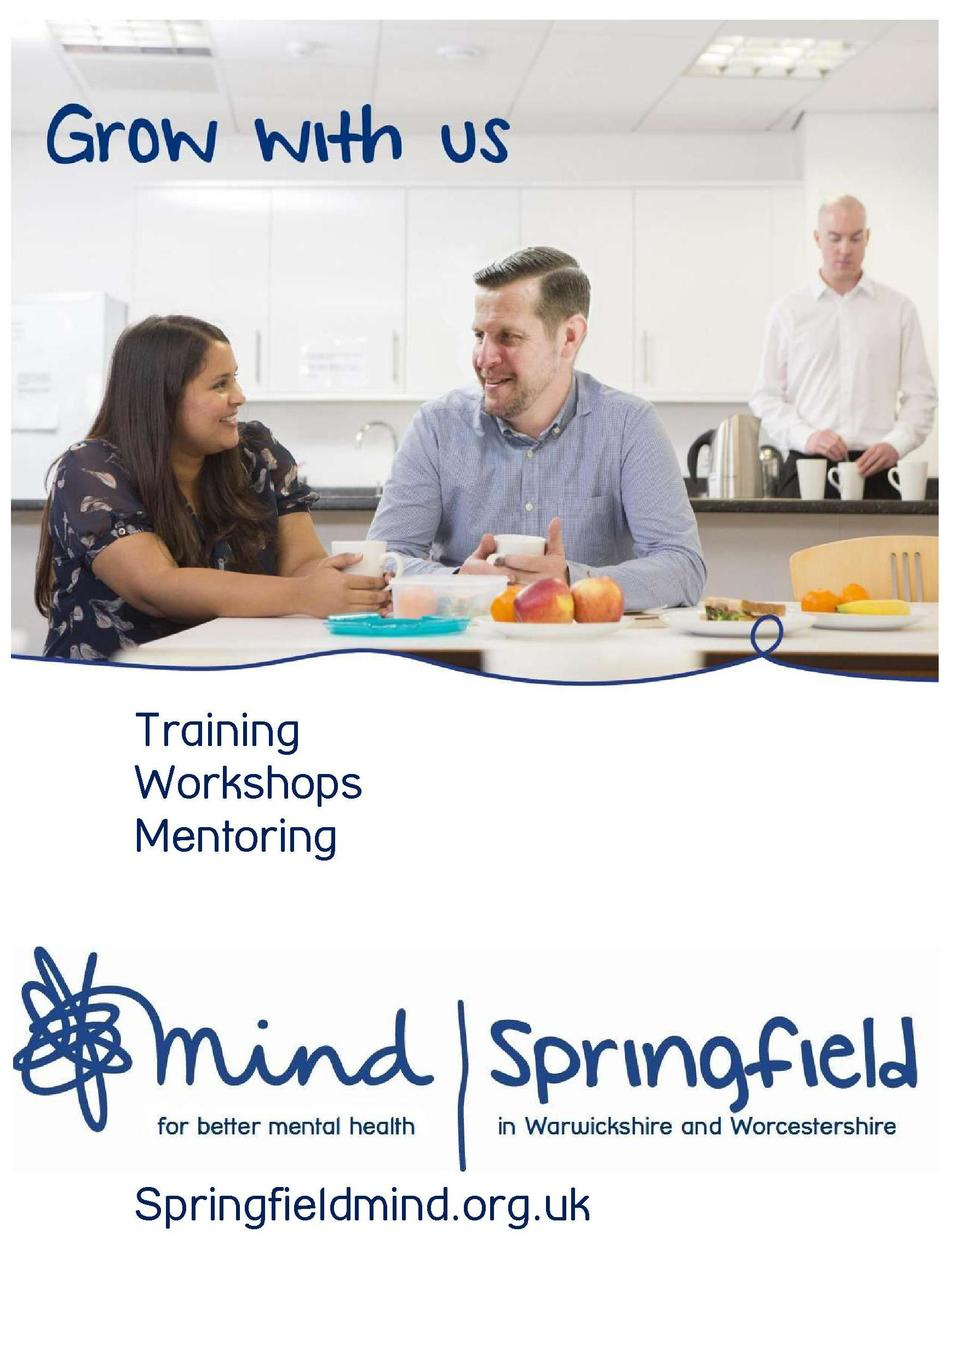 Paul Thompson Training Lead  Training Workshops 07850 950150  Training Workshops Mentoring  training springfieldmind.org.u...